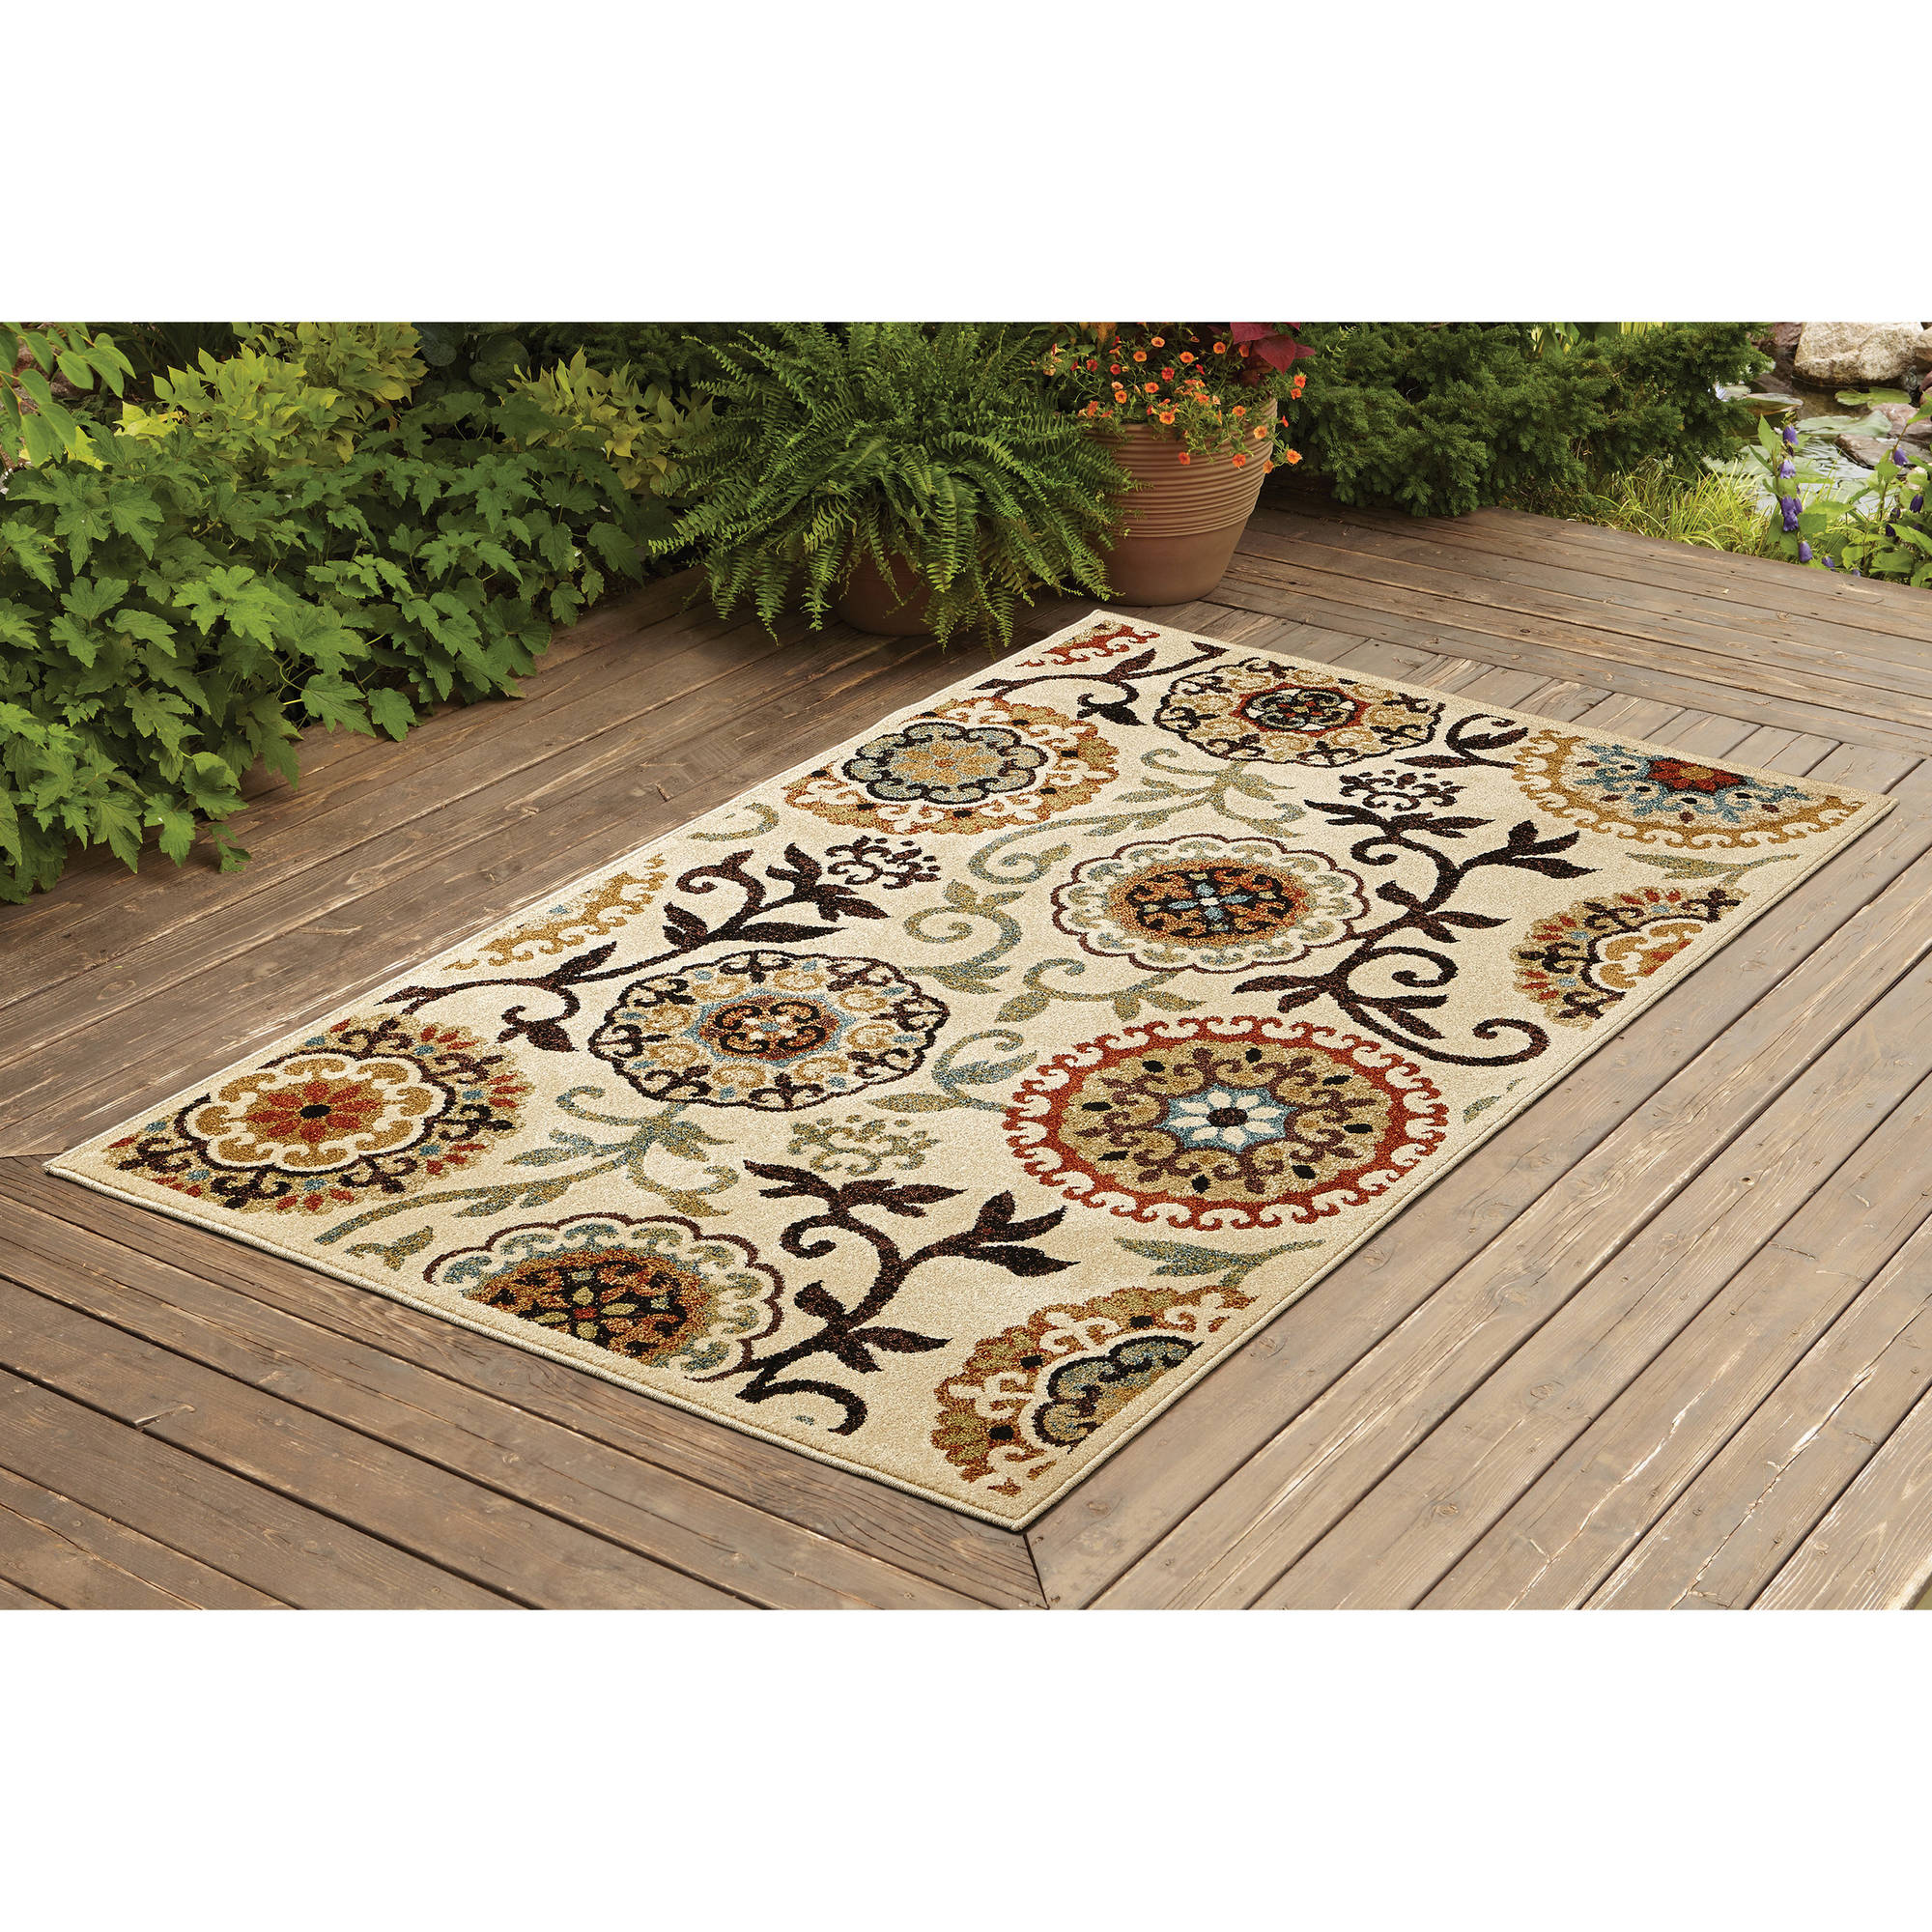 indoor outdoor rugs walmart | Home Decor - photo#13